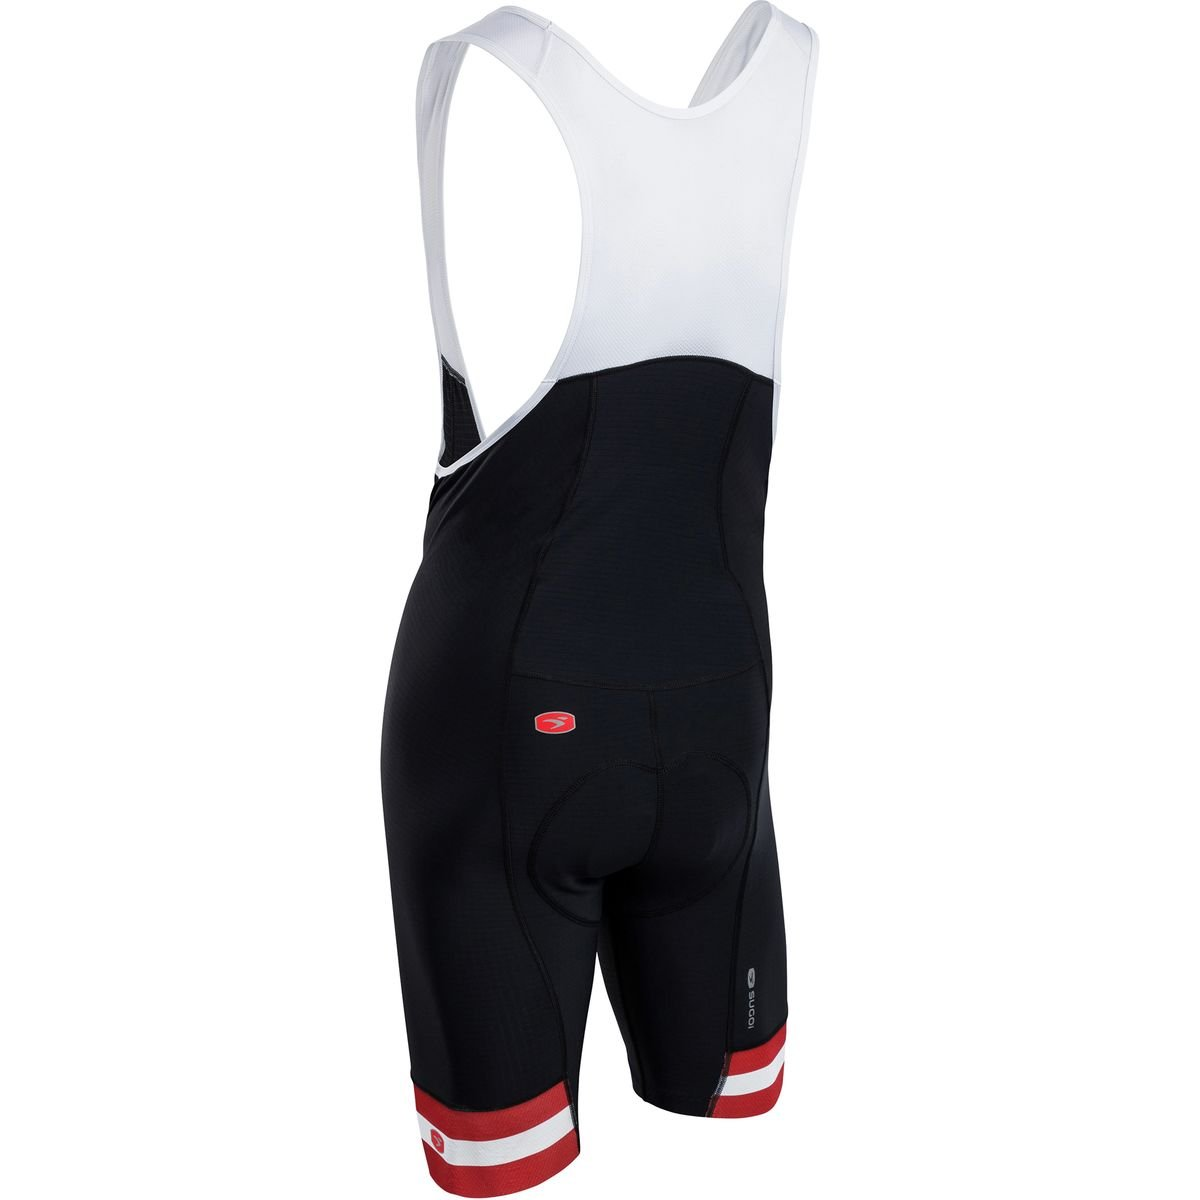 SUGOi Evolution Bib Short - Men's Chili Red 2, L by SUGOi (Image #2)